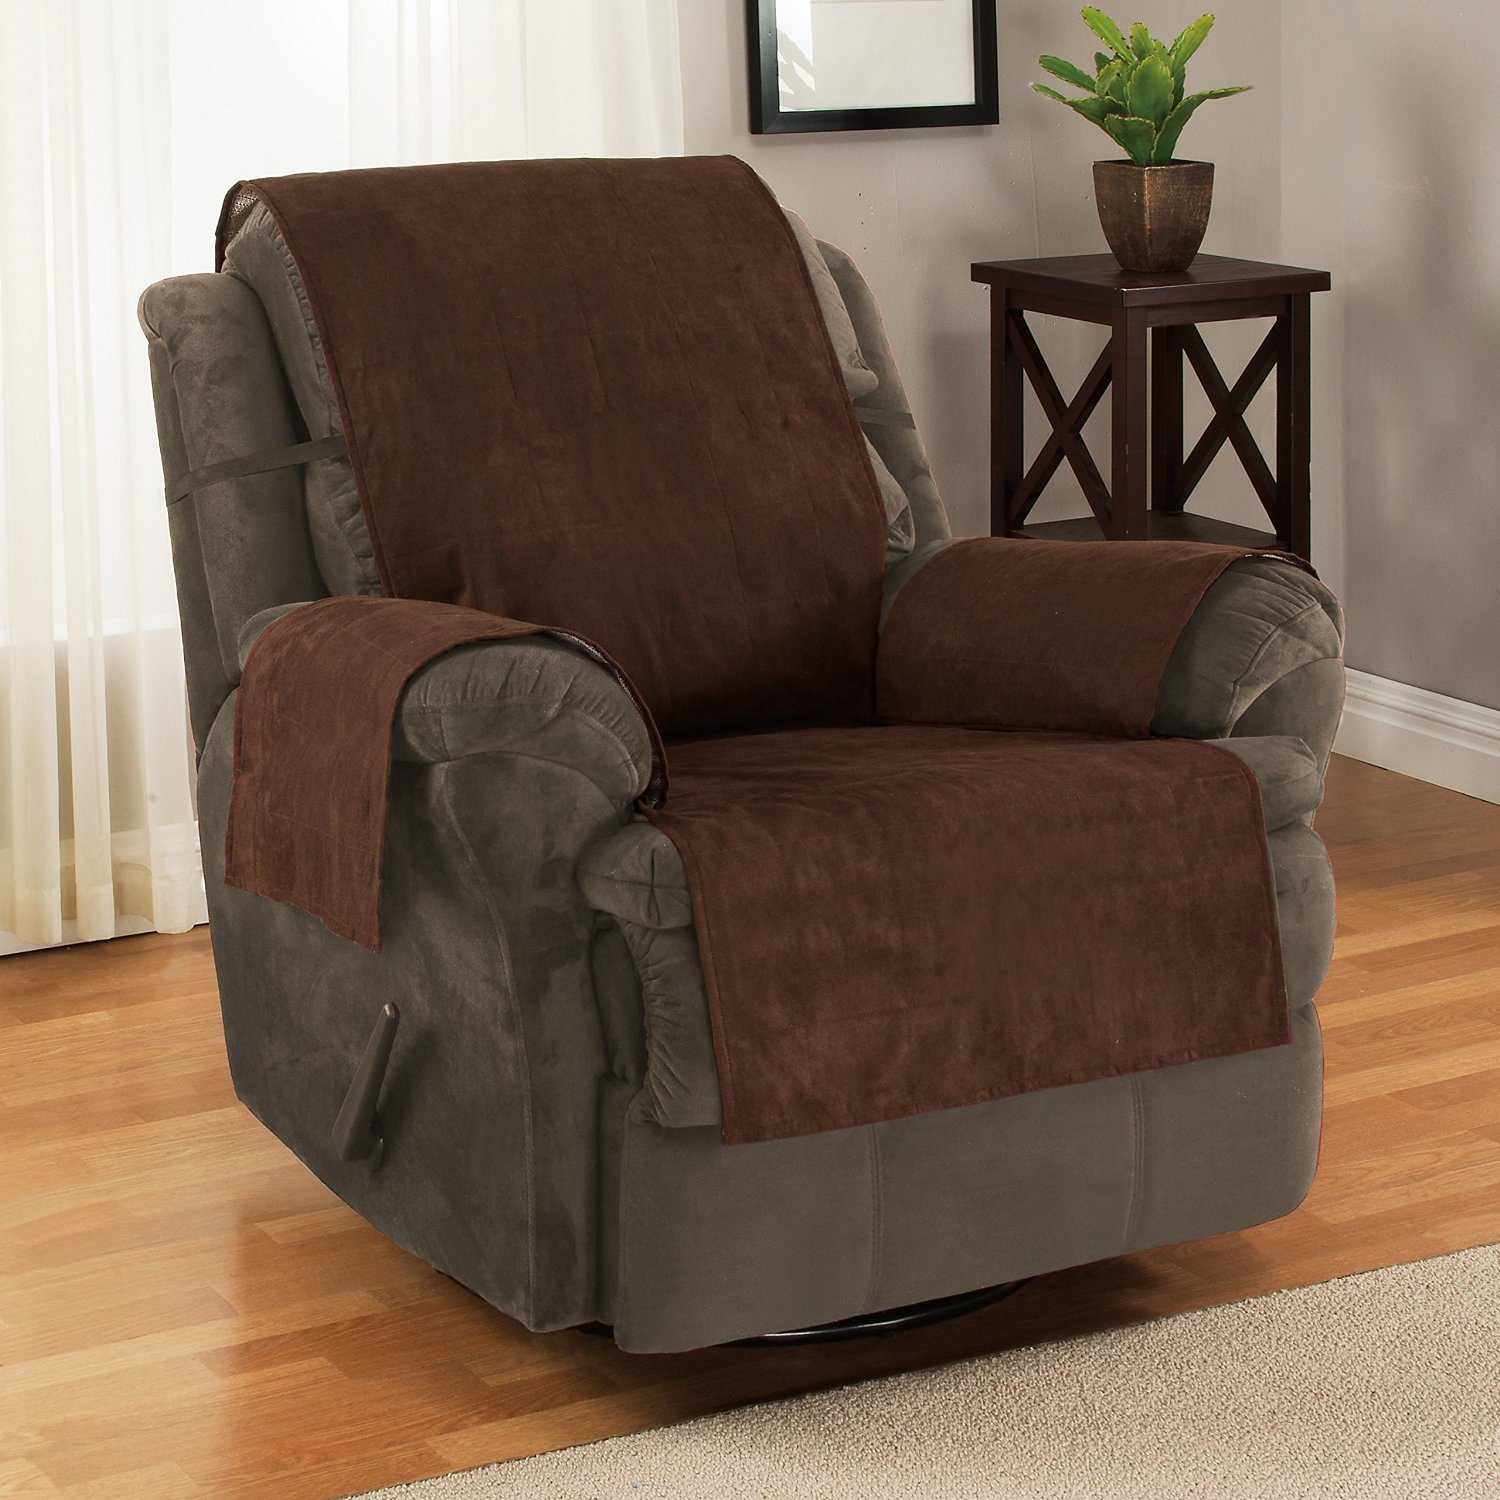 slipcovers questions reeves sage maytex dark recliner